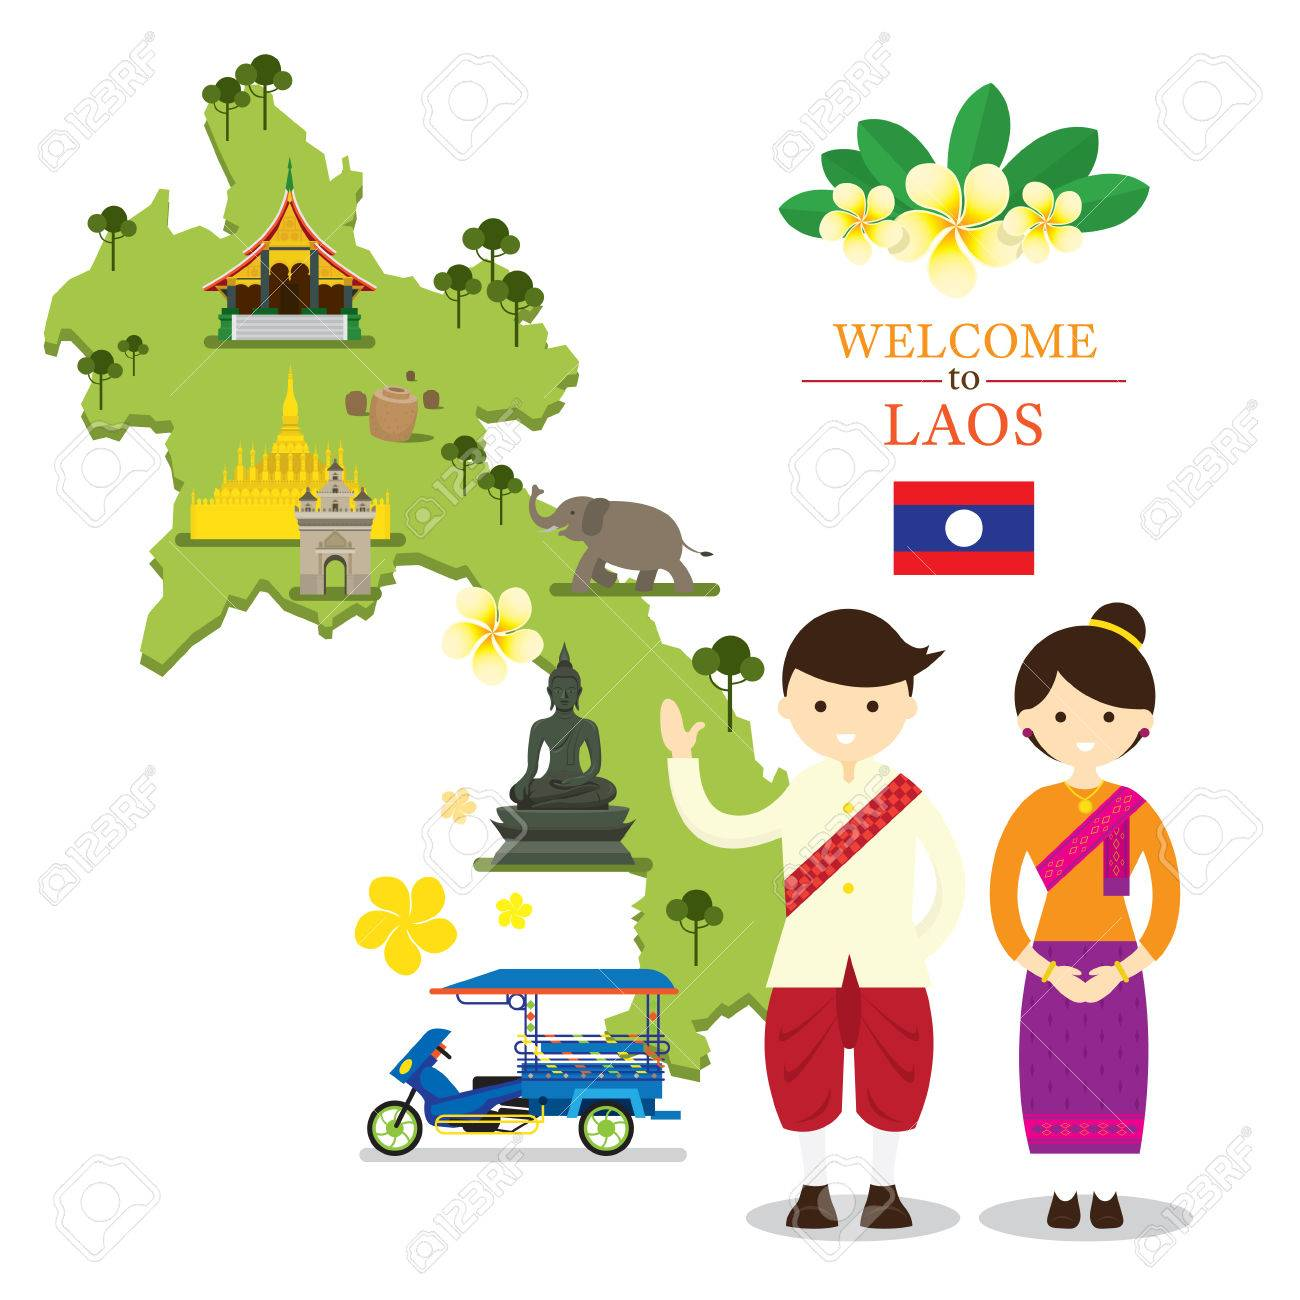 Laos Map And Landmarks With People In Traditional Clothing Culture